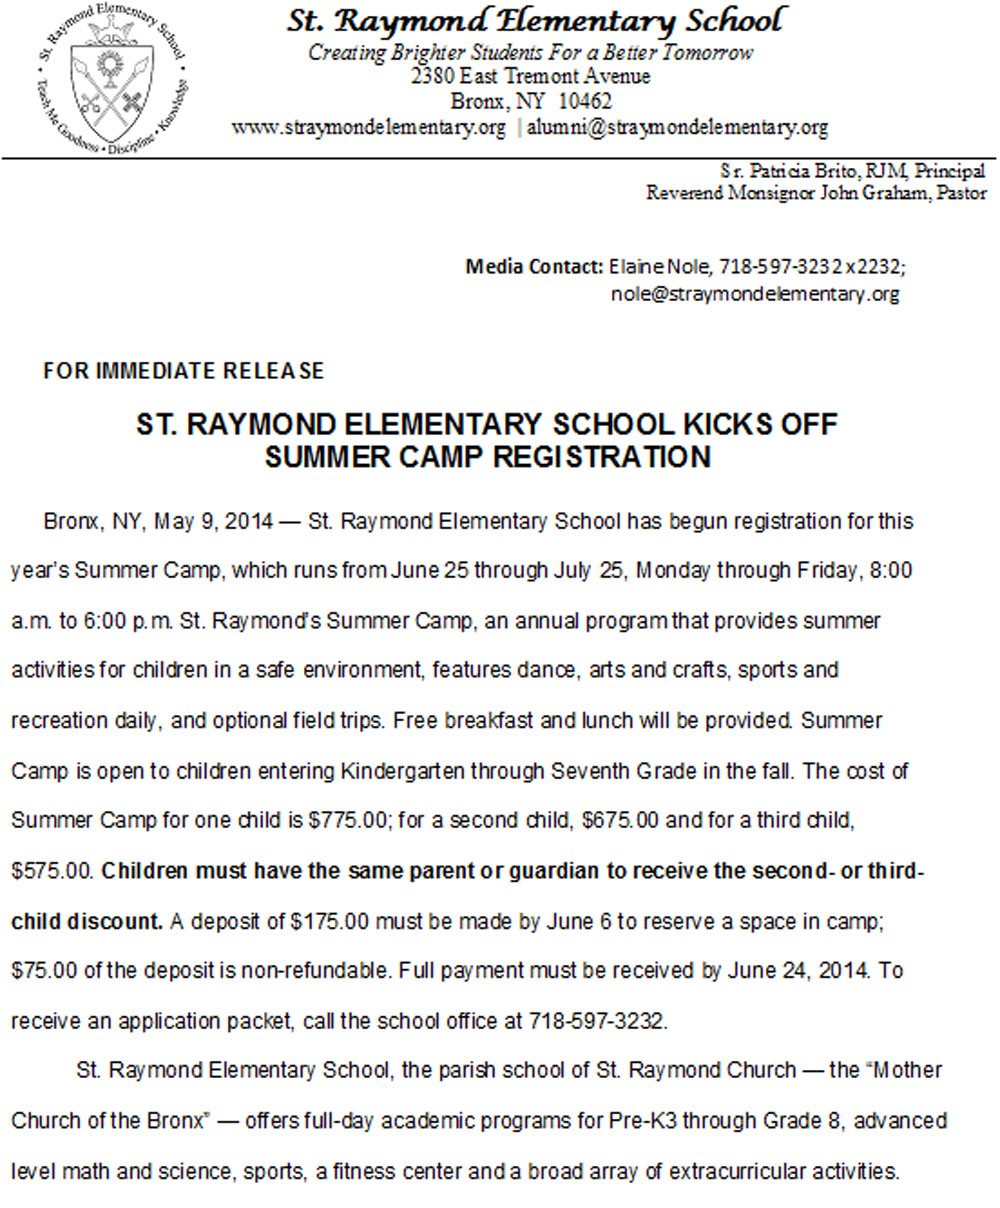 Summer Camp Registration Open for St. Raymond Elementary